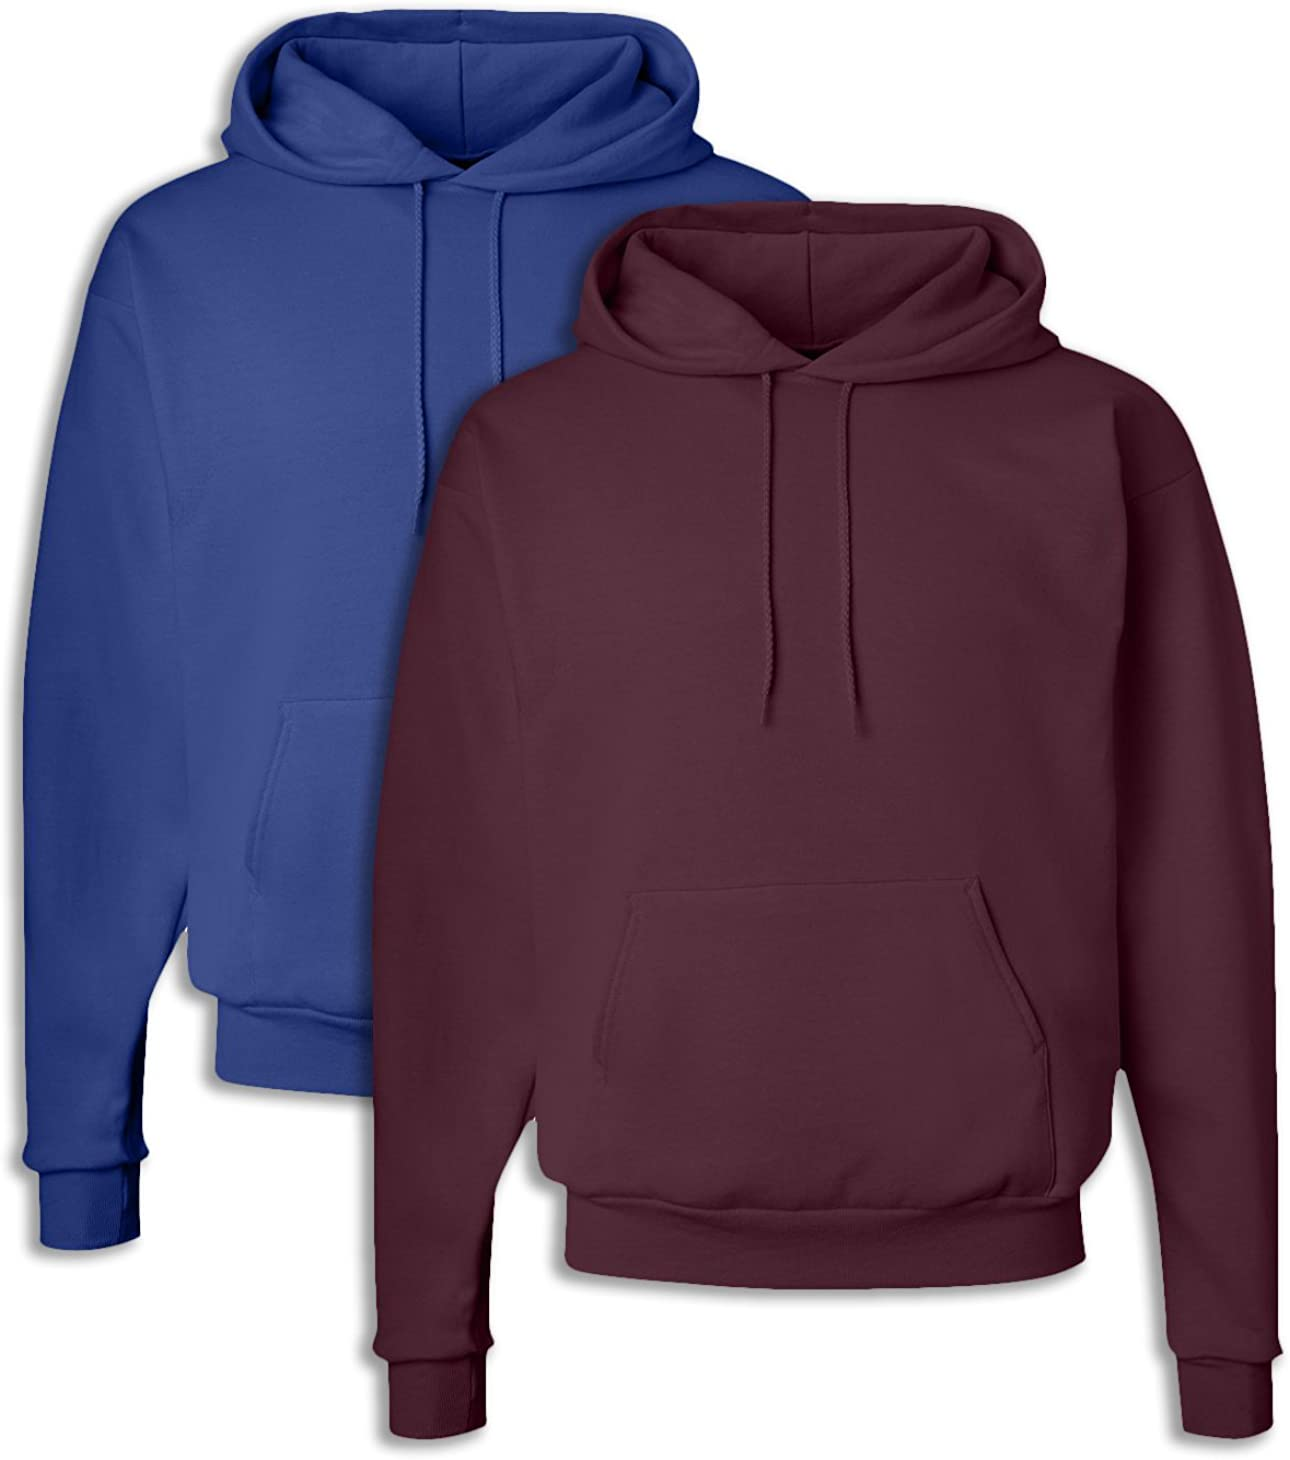 Hanes P170 Mens EcoSmart Hooded Sweatshirt Small 1 Deep Royal 1 Maroon